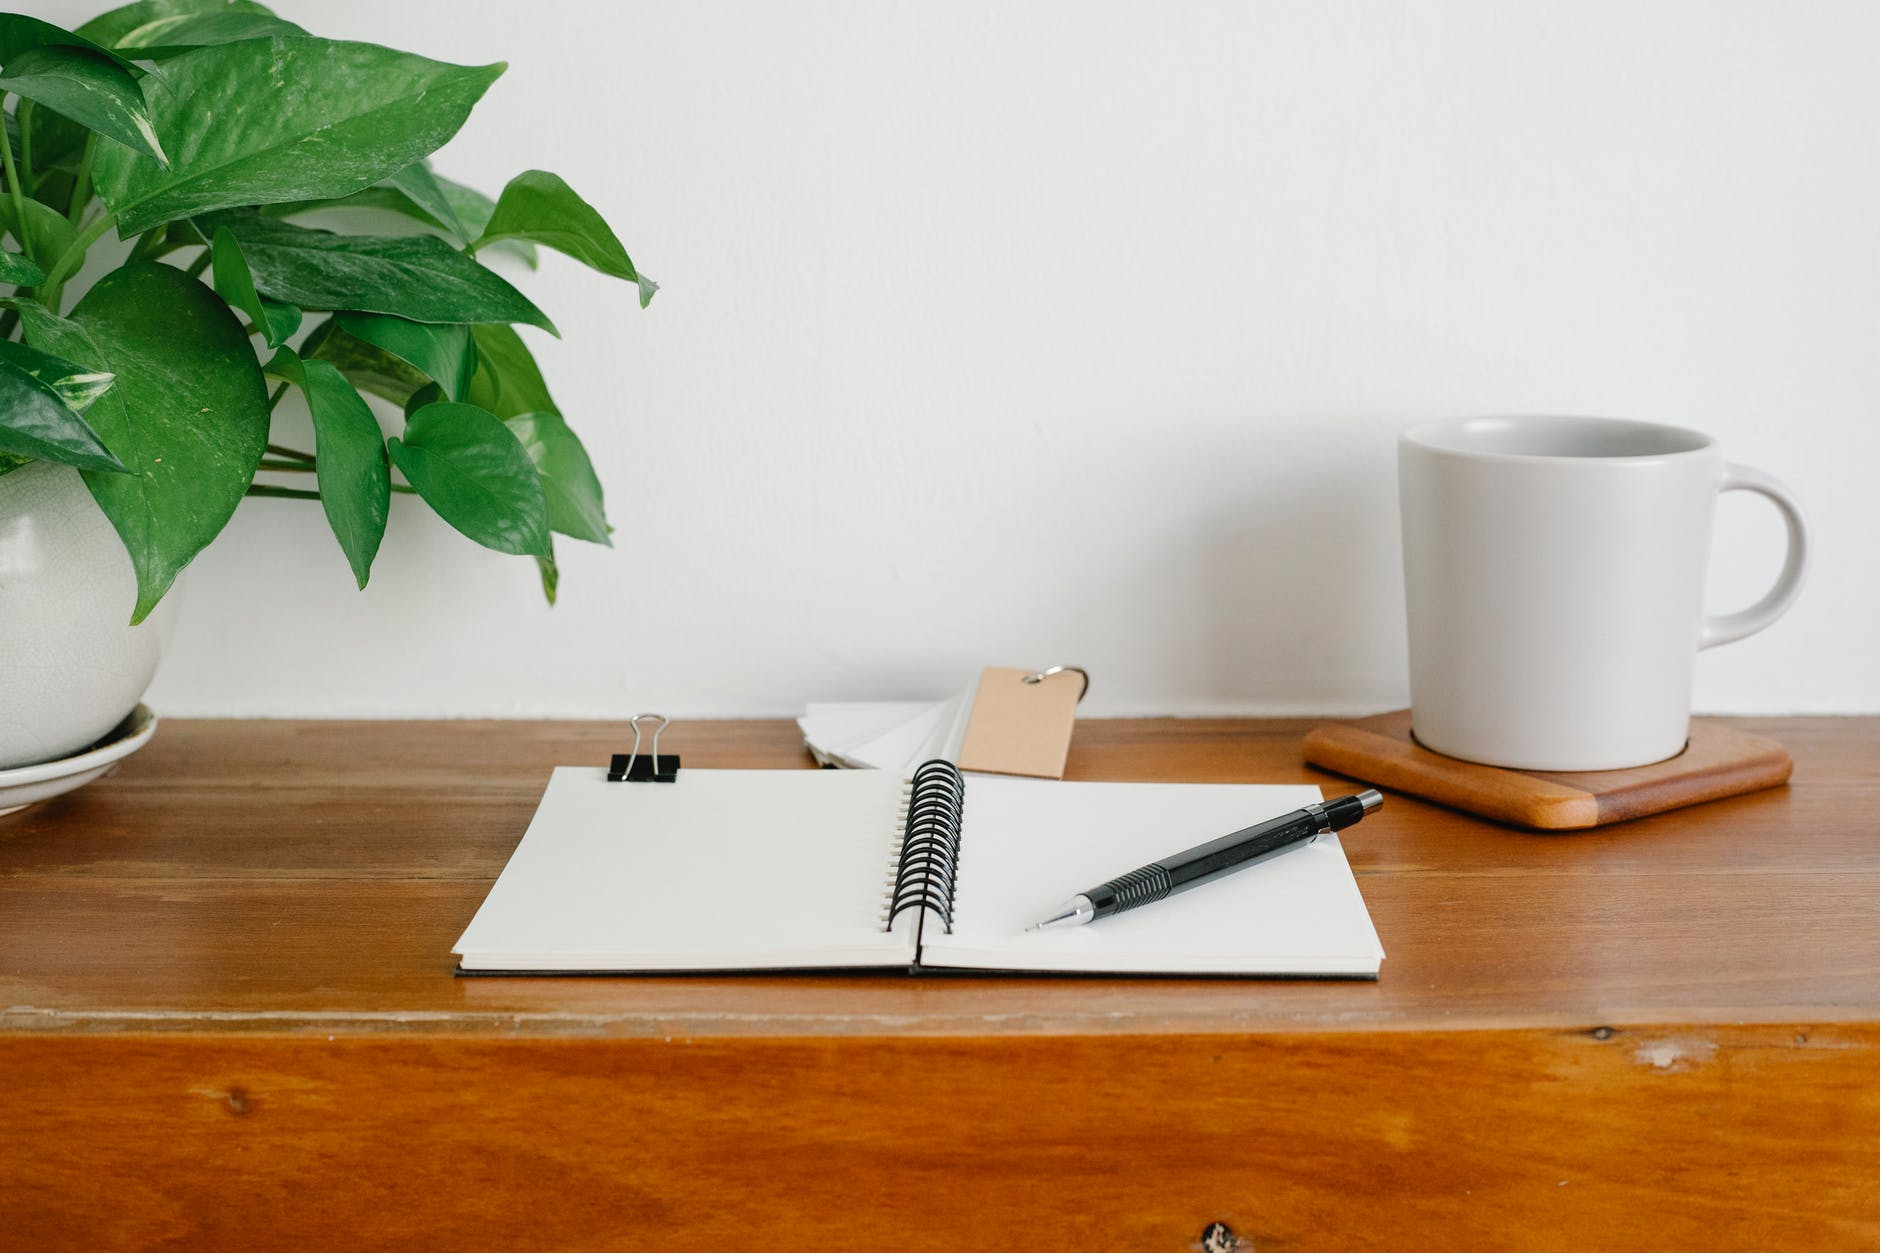 table with stationery in workspace